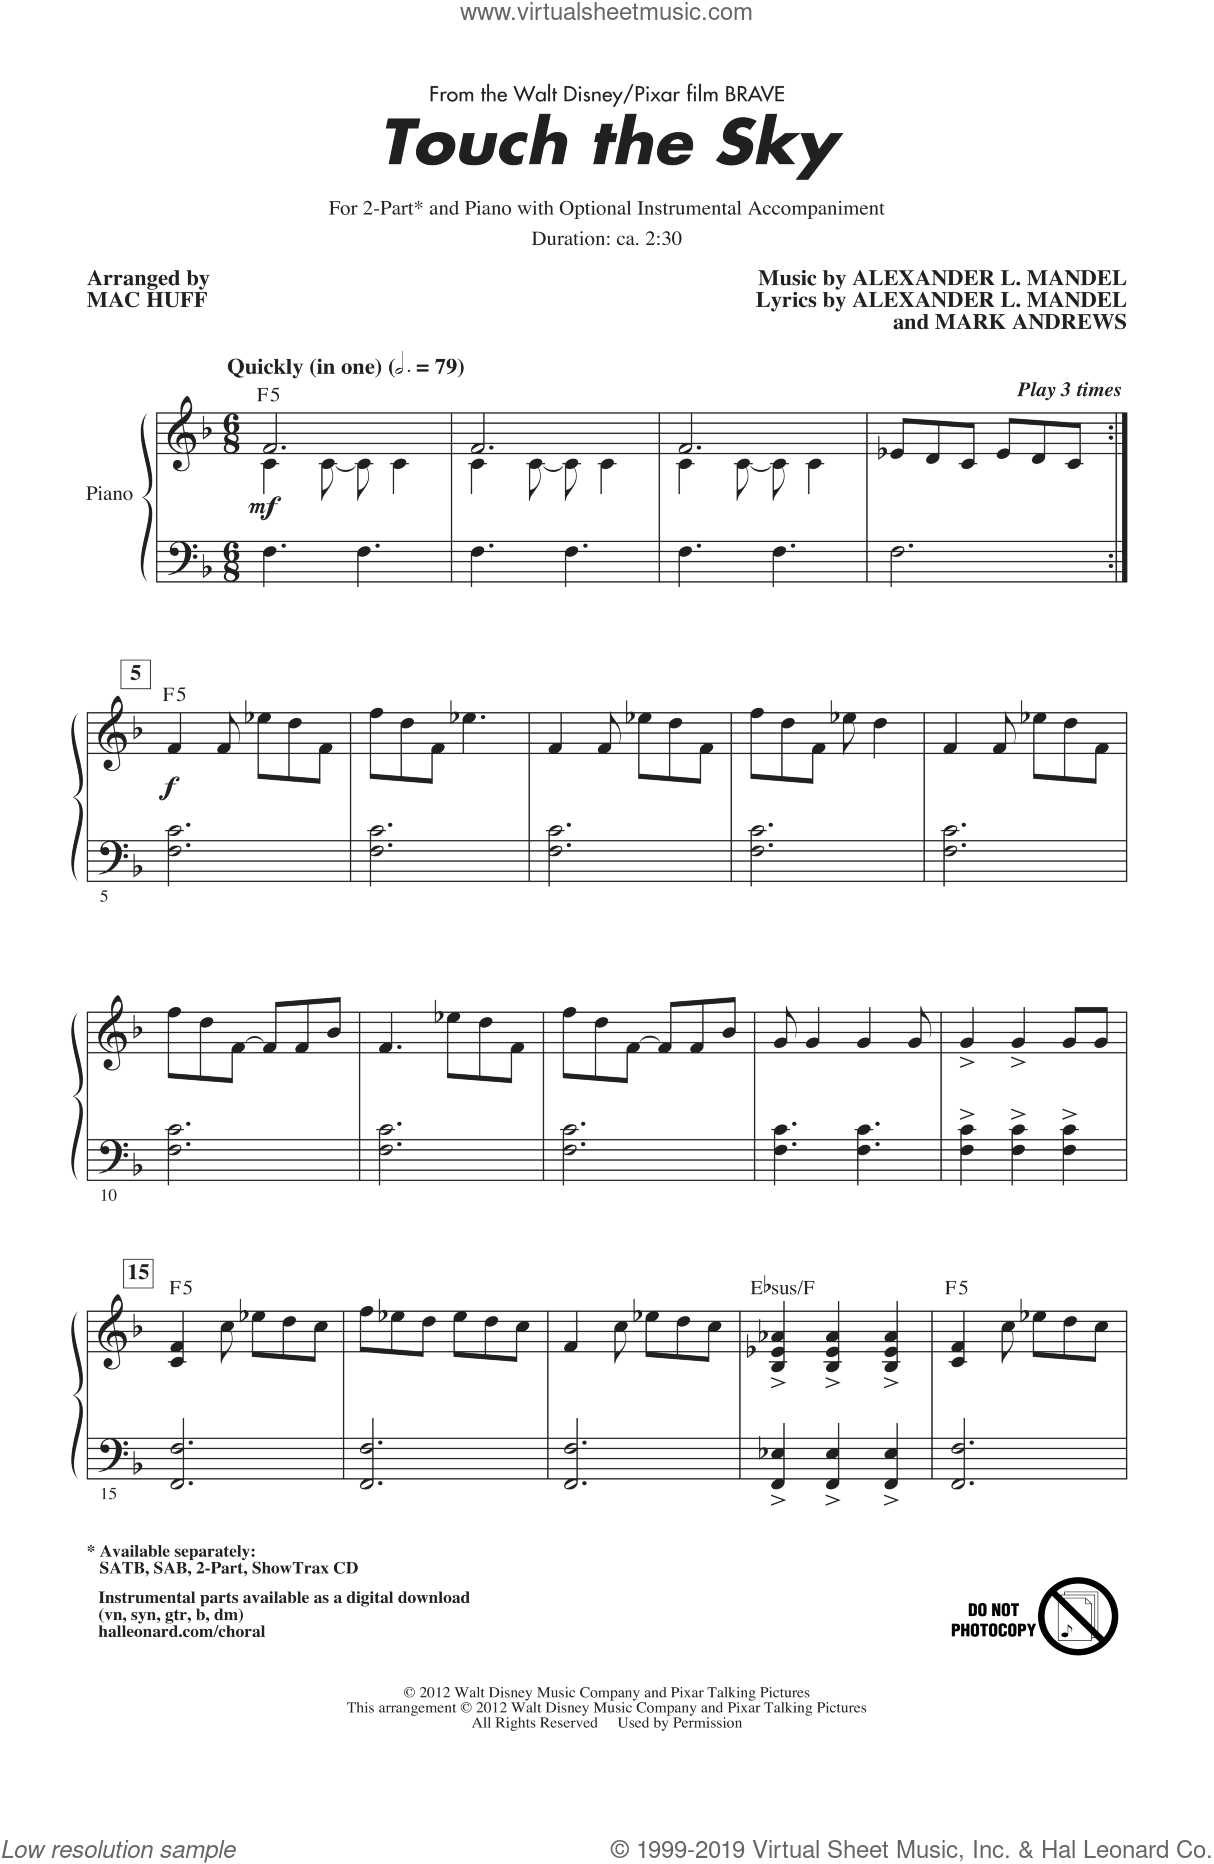 Touch The Sky (From Brave) (arr. Mac Huff) sheet music for choir (2-Part) by Julie Fowlis, Alexander L. Mandel, Mark Andrews and Mac Huff, intermediate duet